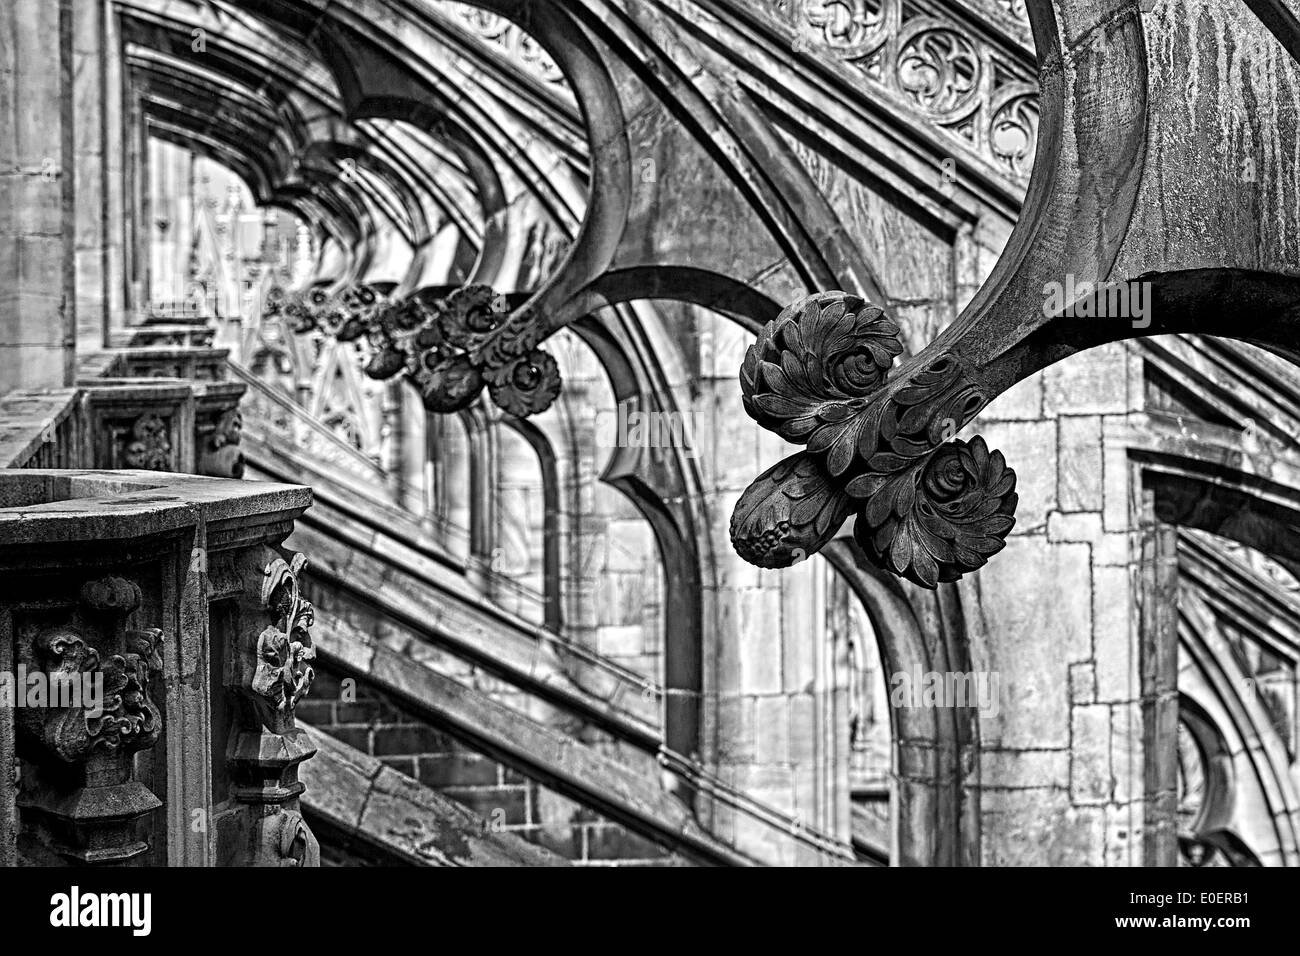 Ornaments on flying buttresses, Milan Cathedral (Duomo di Milano), Milan, Italy - Stock Image